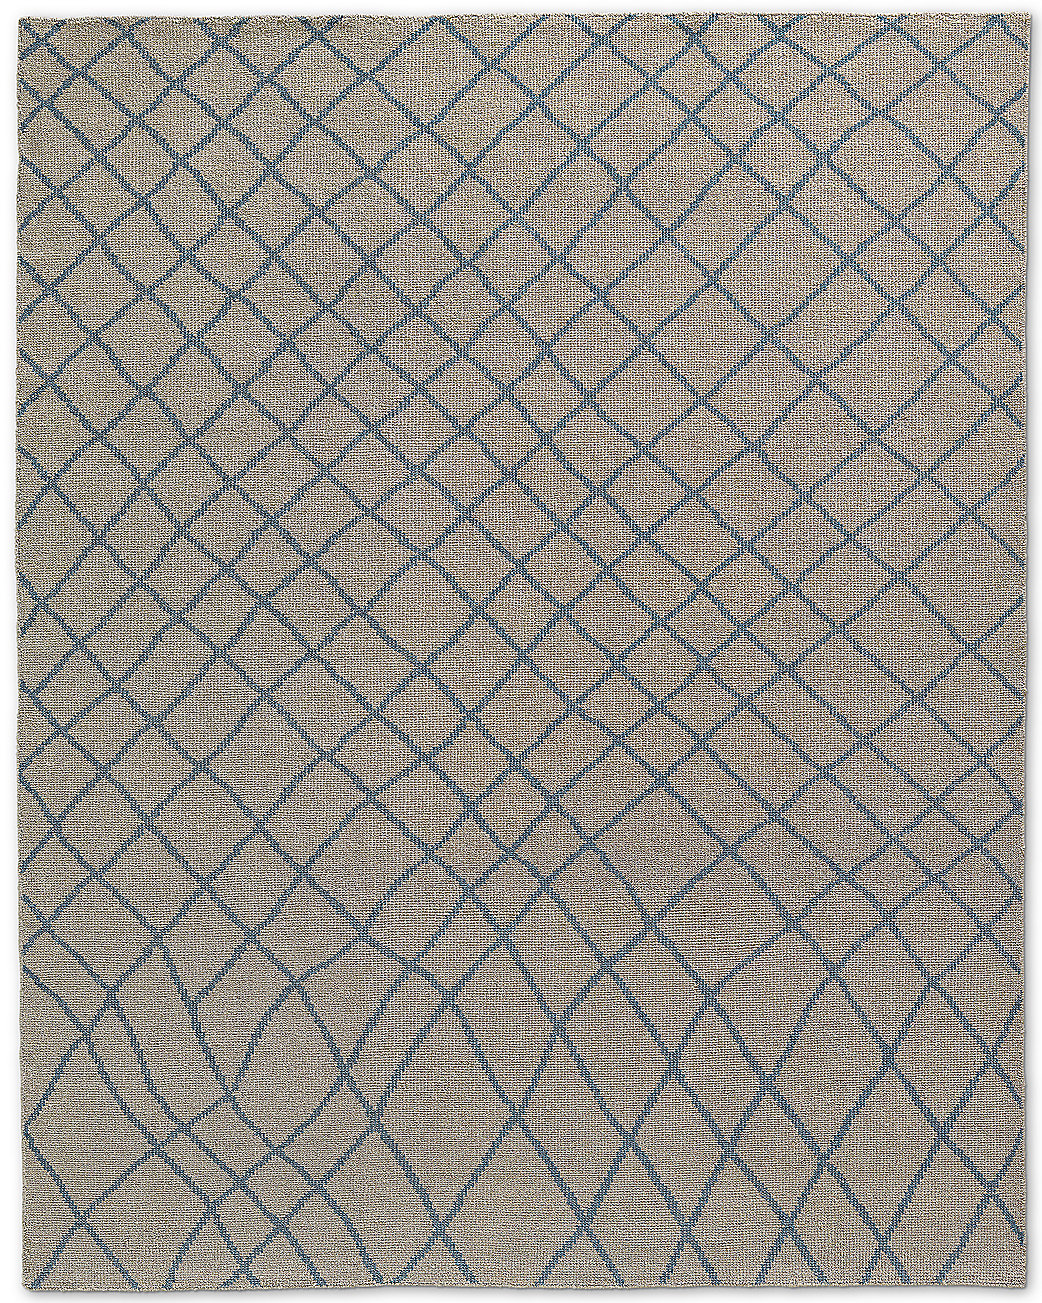 Sketched Diamond Rug - Blue